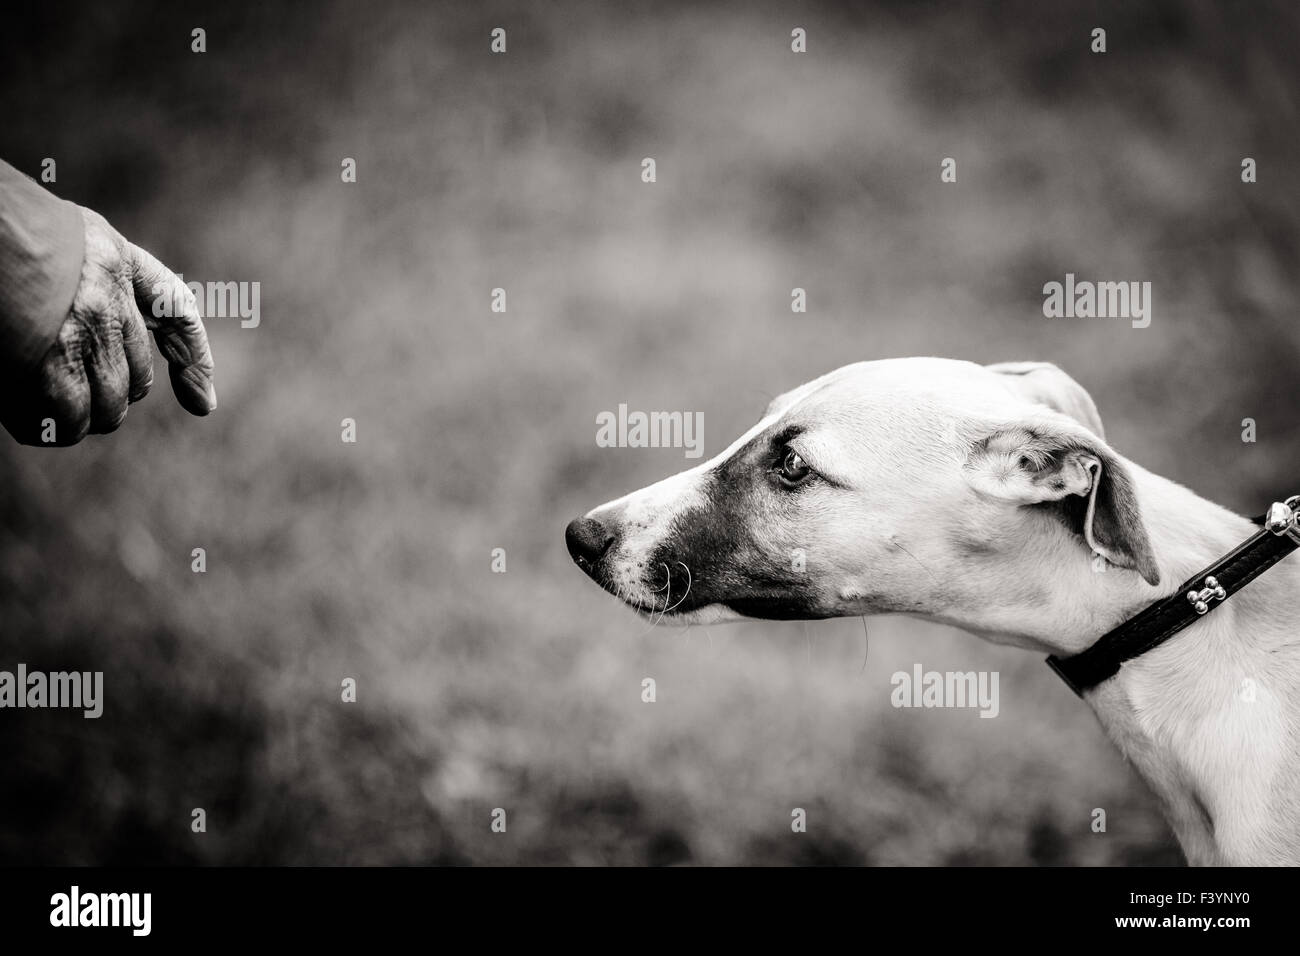 Cautious approach - Stock Image